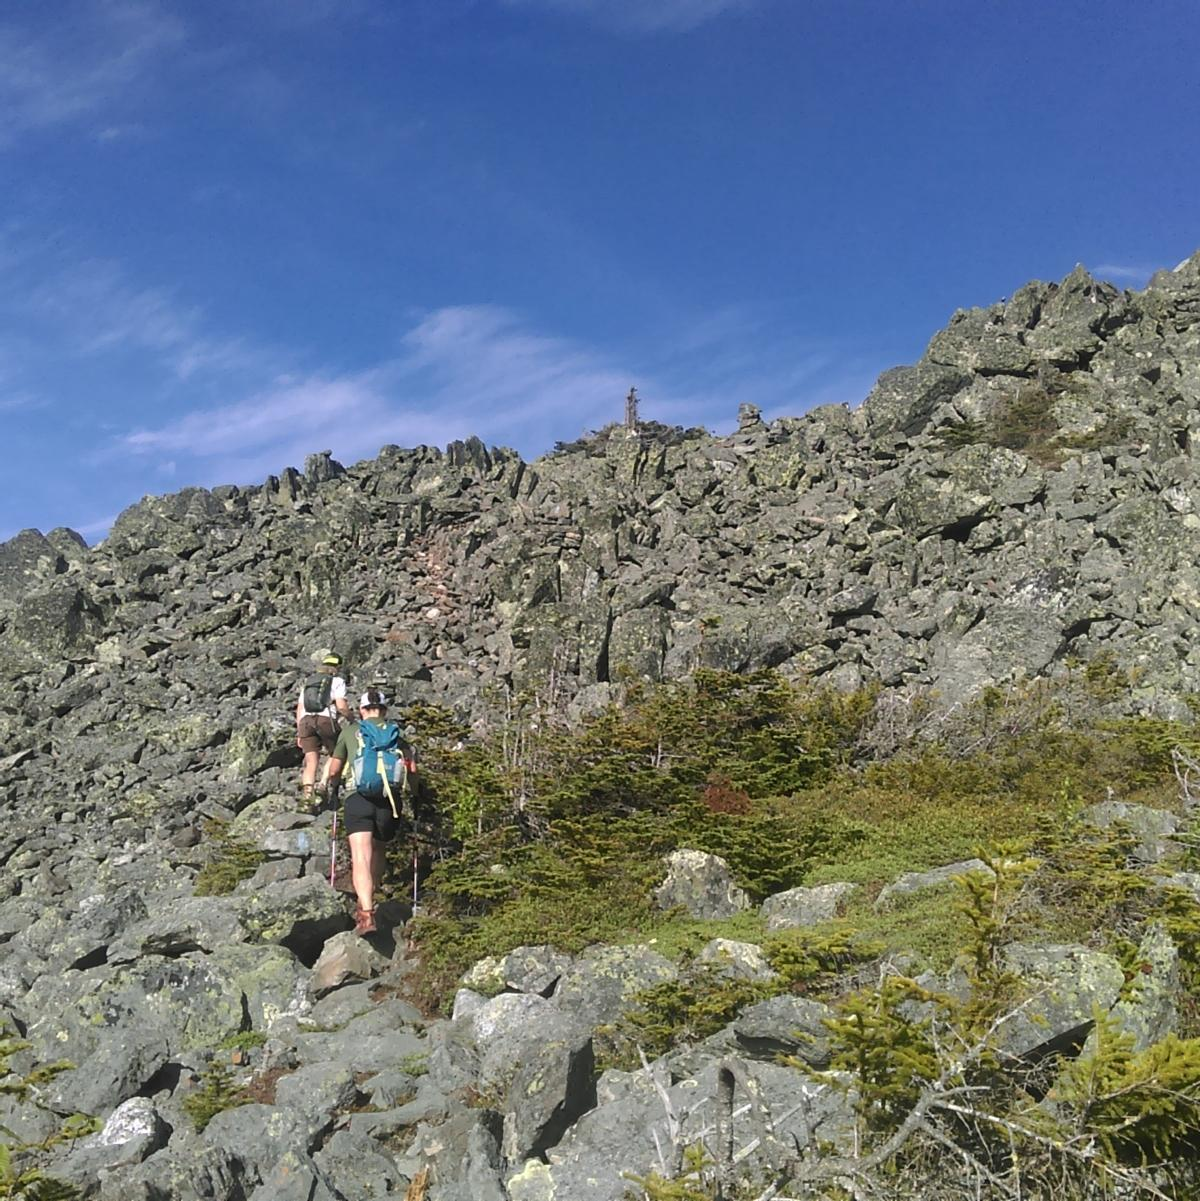 Many jumbled rocks make up the talus slope that two women are hiking over